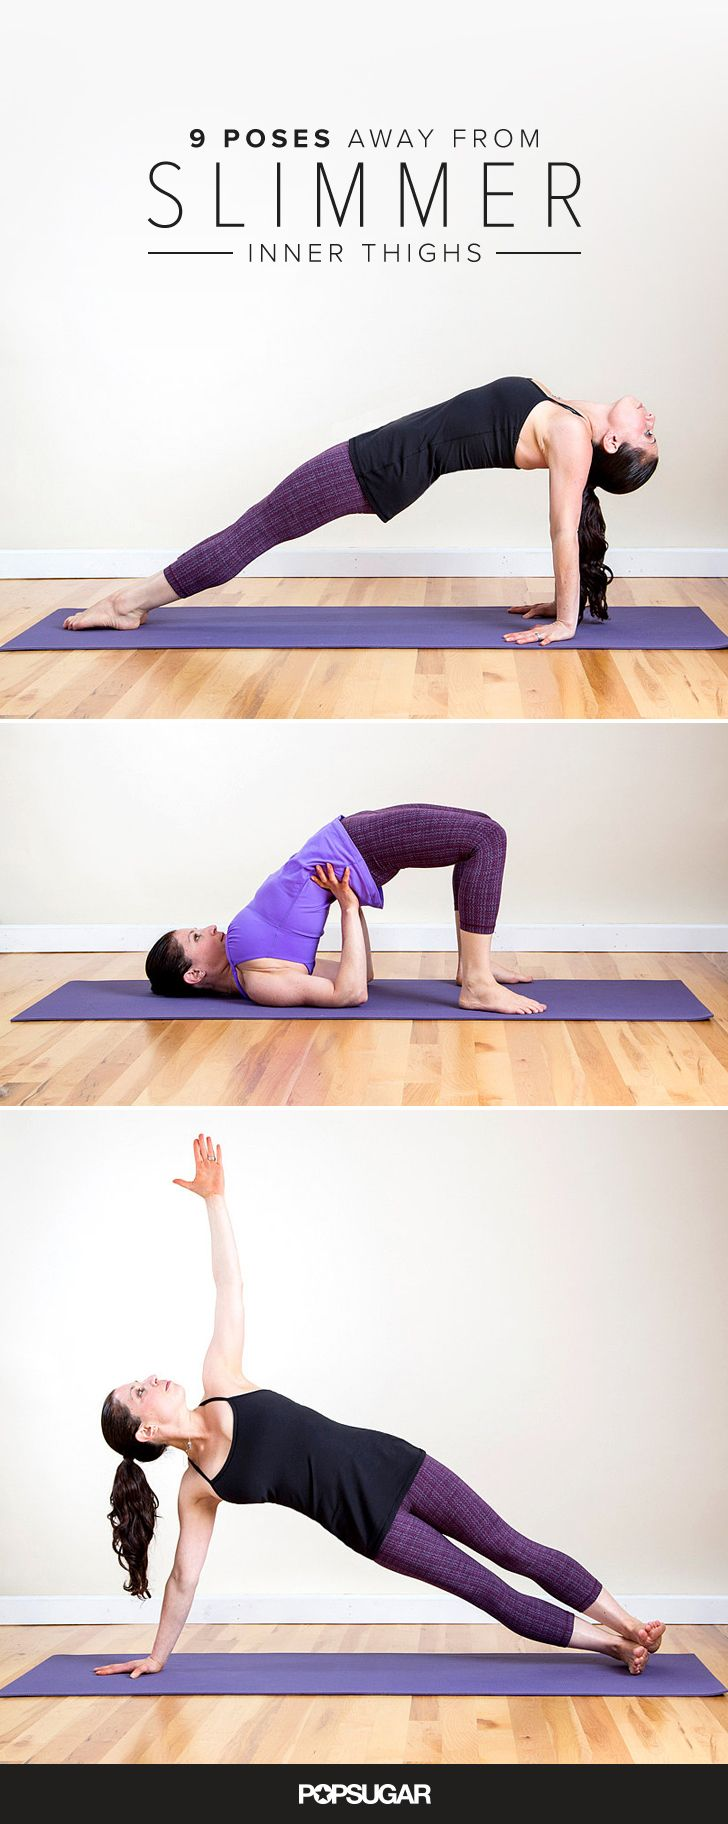 Best 20+ Yoga Images Ideas On Pinterest  Strengthening Yoga, Yoga Shoulder  And Basic Yoga Poses